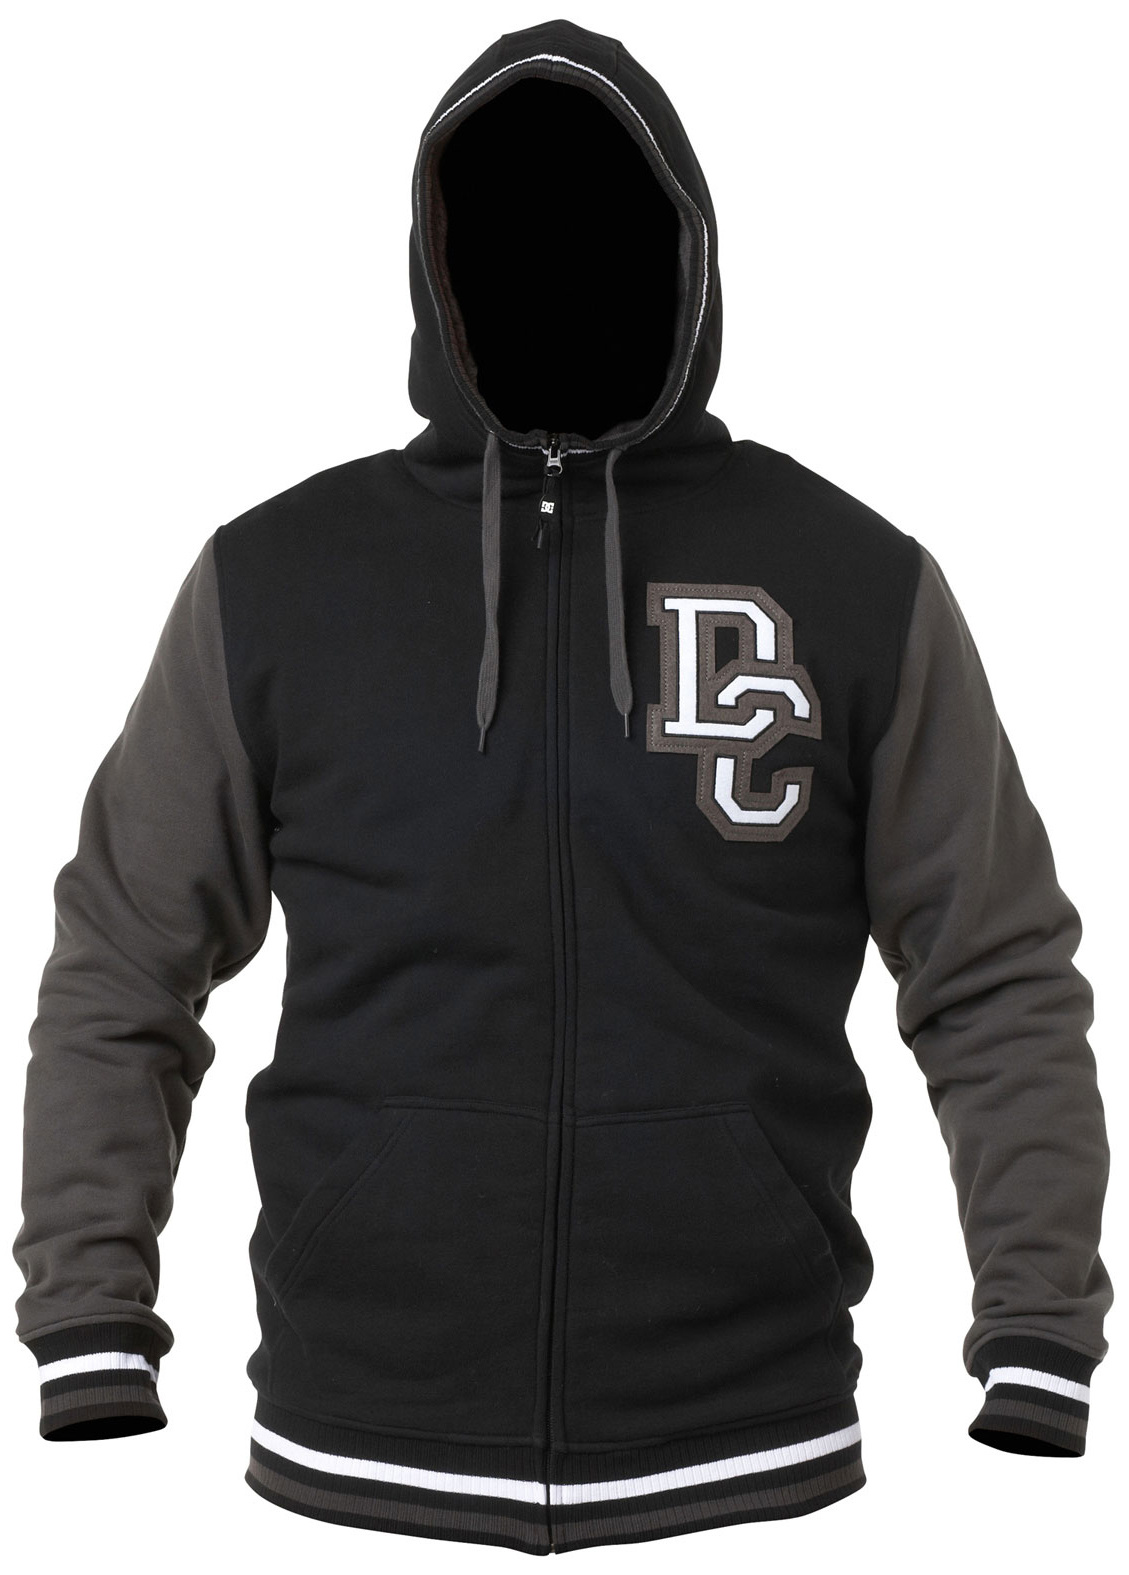 Skateboard Water repellent technical fleece with an old school, athletic inspiration. Bunny fur lined hood and body, rib thumb hole cuffs, dc logo felt patch and media pocket.Key Features of the DC Harper Hoodie: Fit: standard fzh 60/40 cotton polyester 340g fleece - $90.00